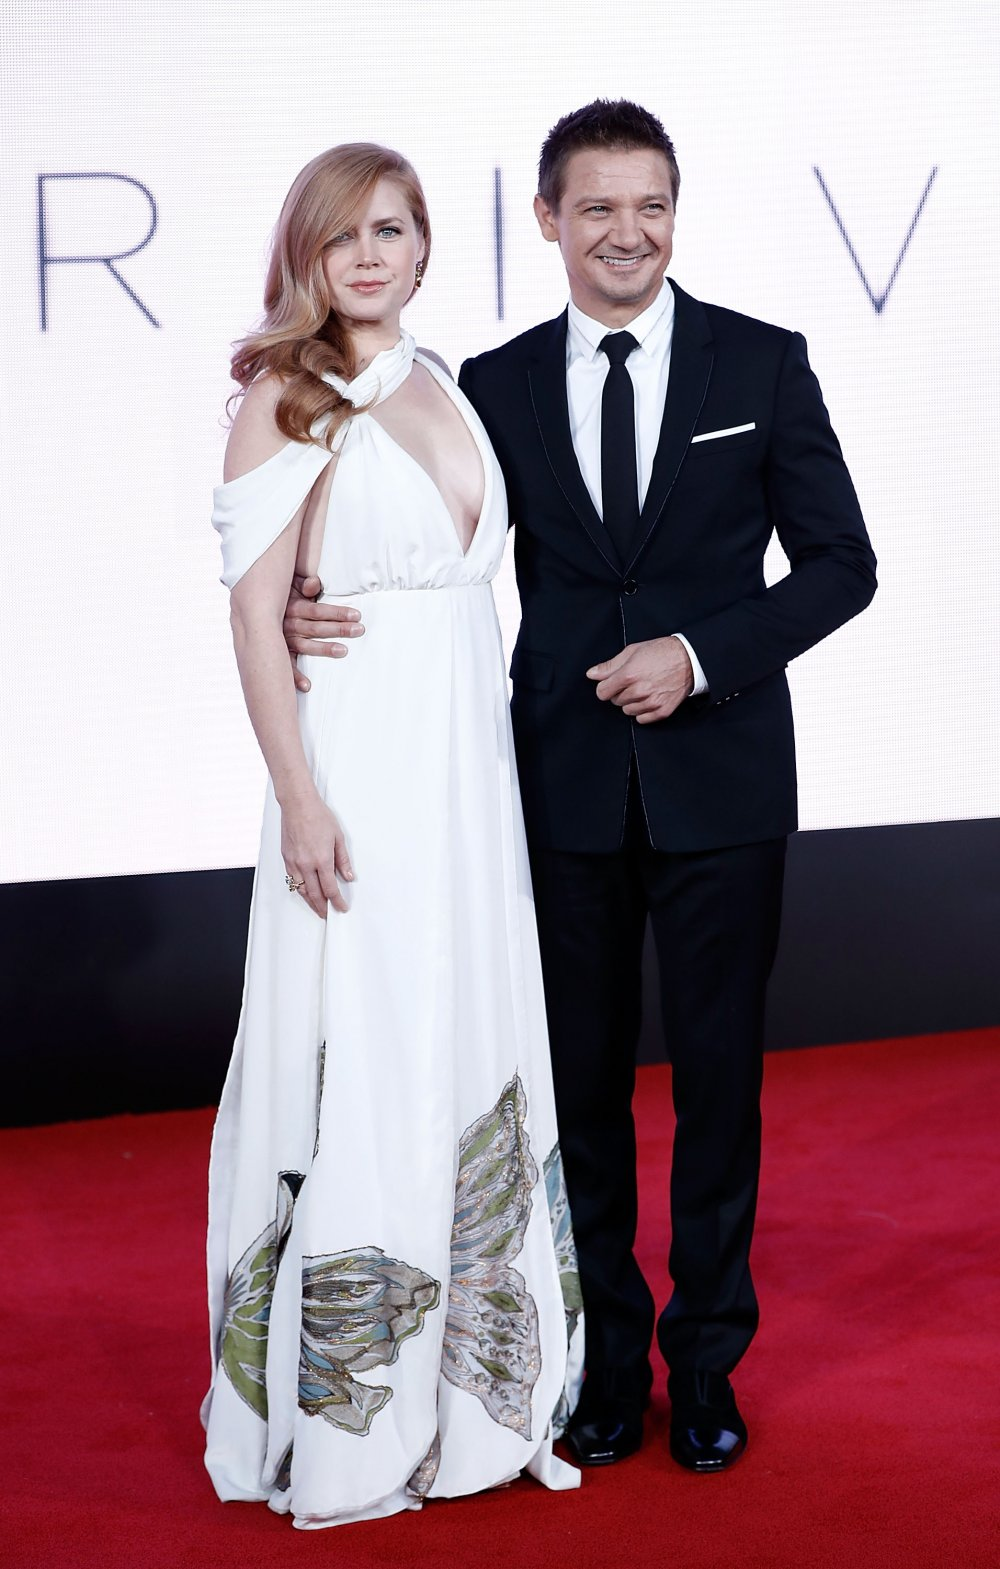 Amy Adams and Jeremy Renner attend the Arrival premiere during the 60th BFI London Film Festival